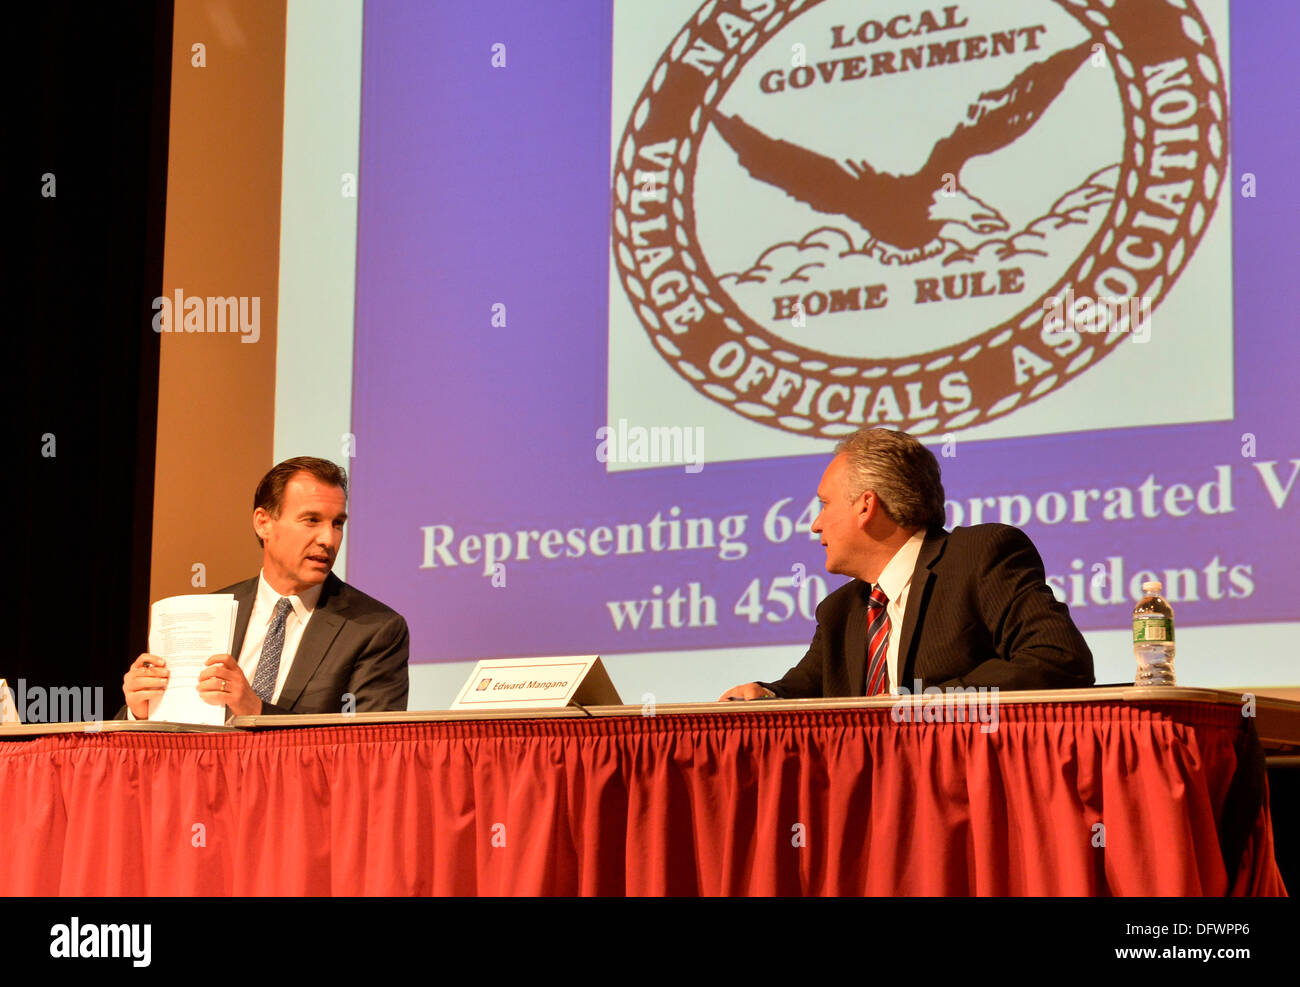 Old Westbury, New York, U.S. 8th October 2013. At table, R-L, Republican EDWARD MANGANO, the Nassau County Executive, and Democrat THOMAS SUOZZI, the former County Executive, face each other in a debate hosted by the Nassau County Village Officials Association, representing 64 incorporated villages with 450,000 residents, as the opponents face a rematch in the 2013 November elections. Credit:  Ann E Parry/Alamy Live News - Stock Image